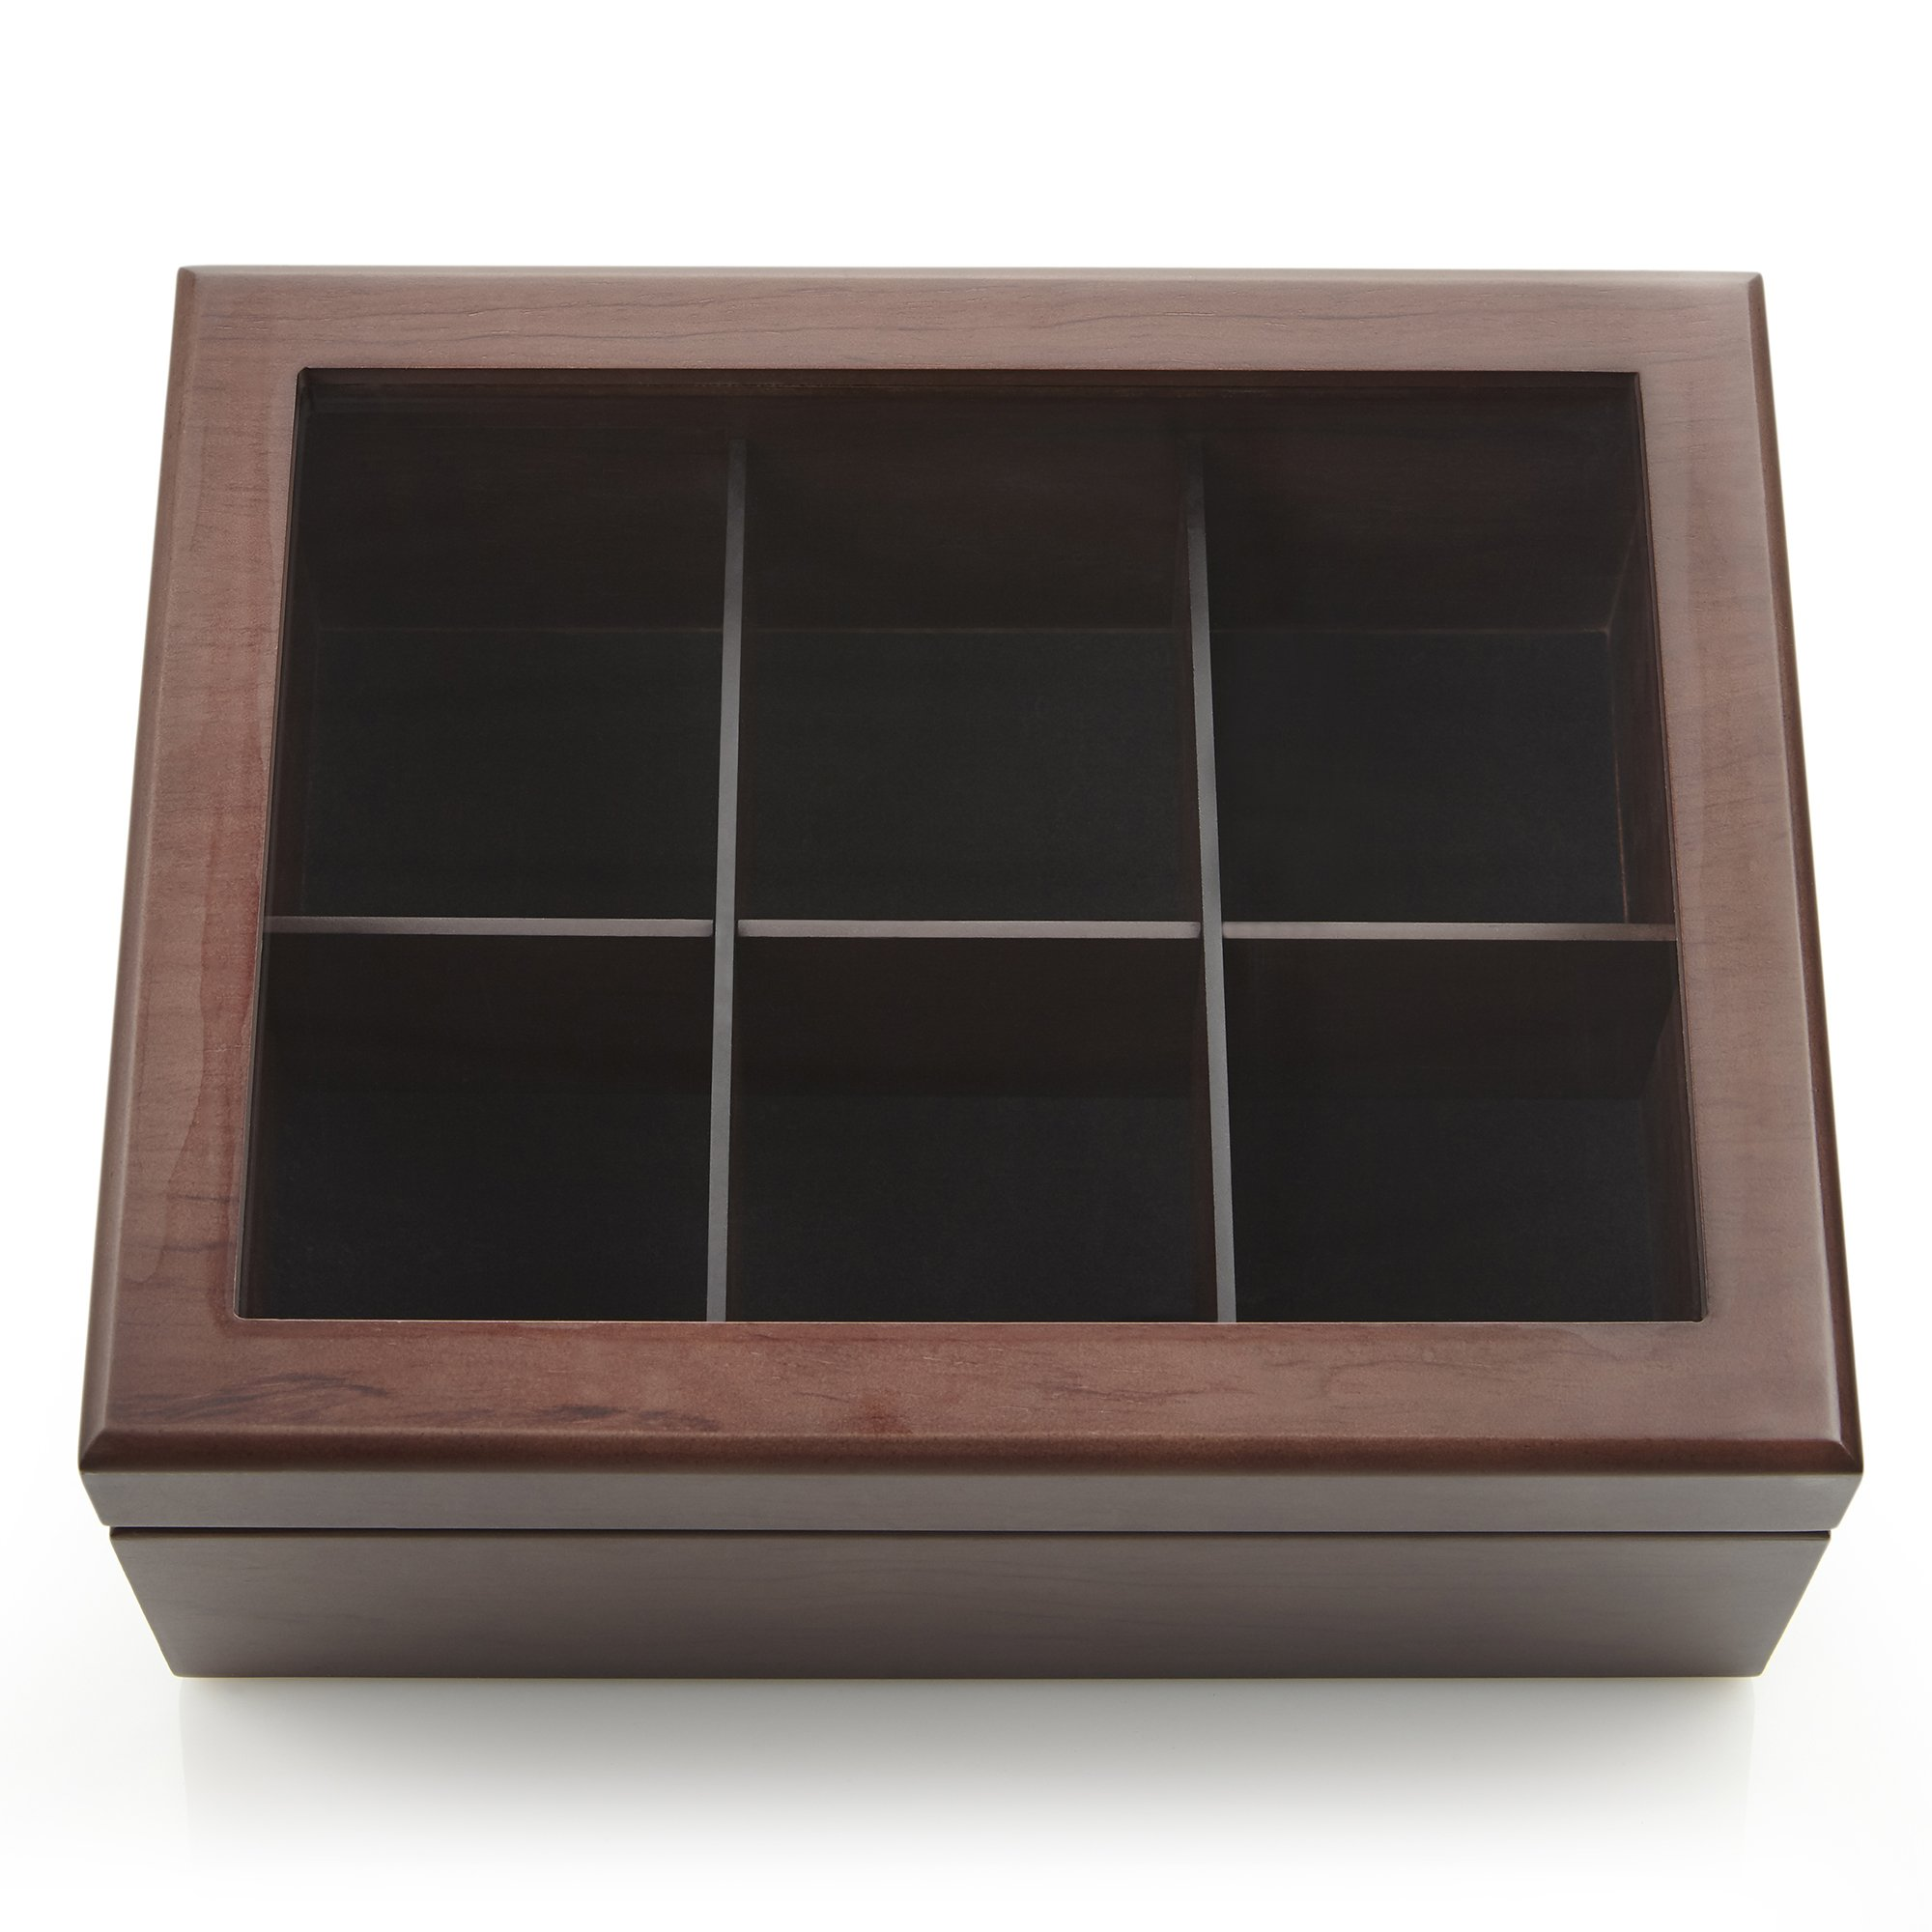 Apace Living Tea Box - Luxury Wooden Tea Storage Chest - 6 Adjustable Compartment Tea Bags Organizer Container - Elegantly Handmade w/Scratch Resistant Window